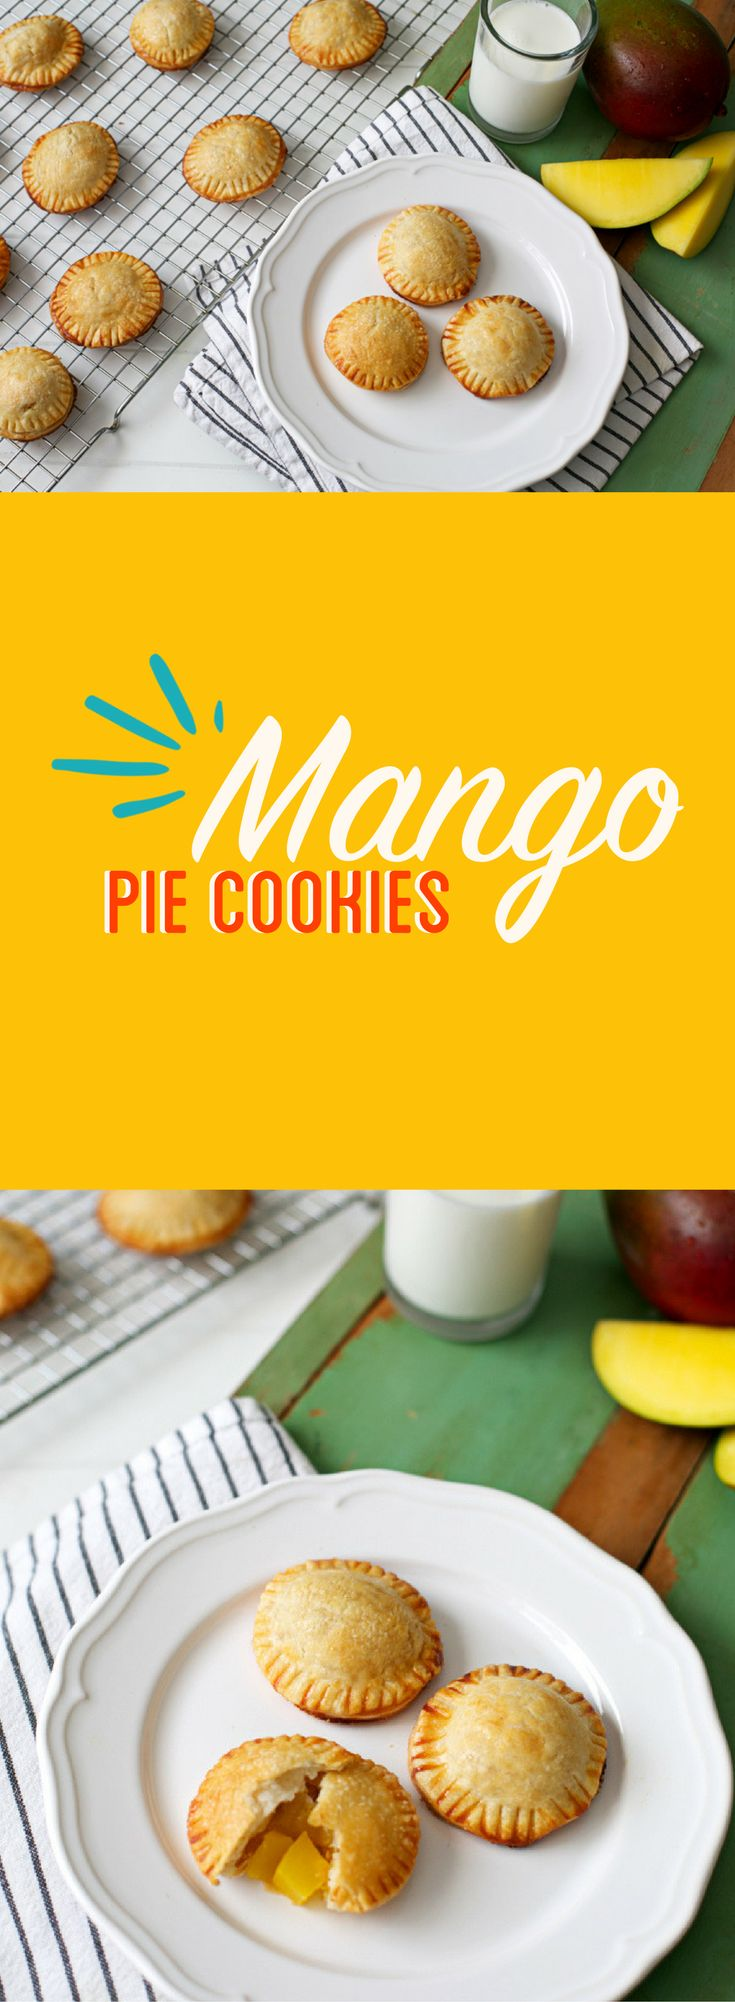 We celebrated National Pie Day with our favorite Mango Pie Cookies!